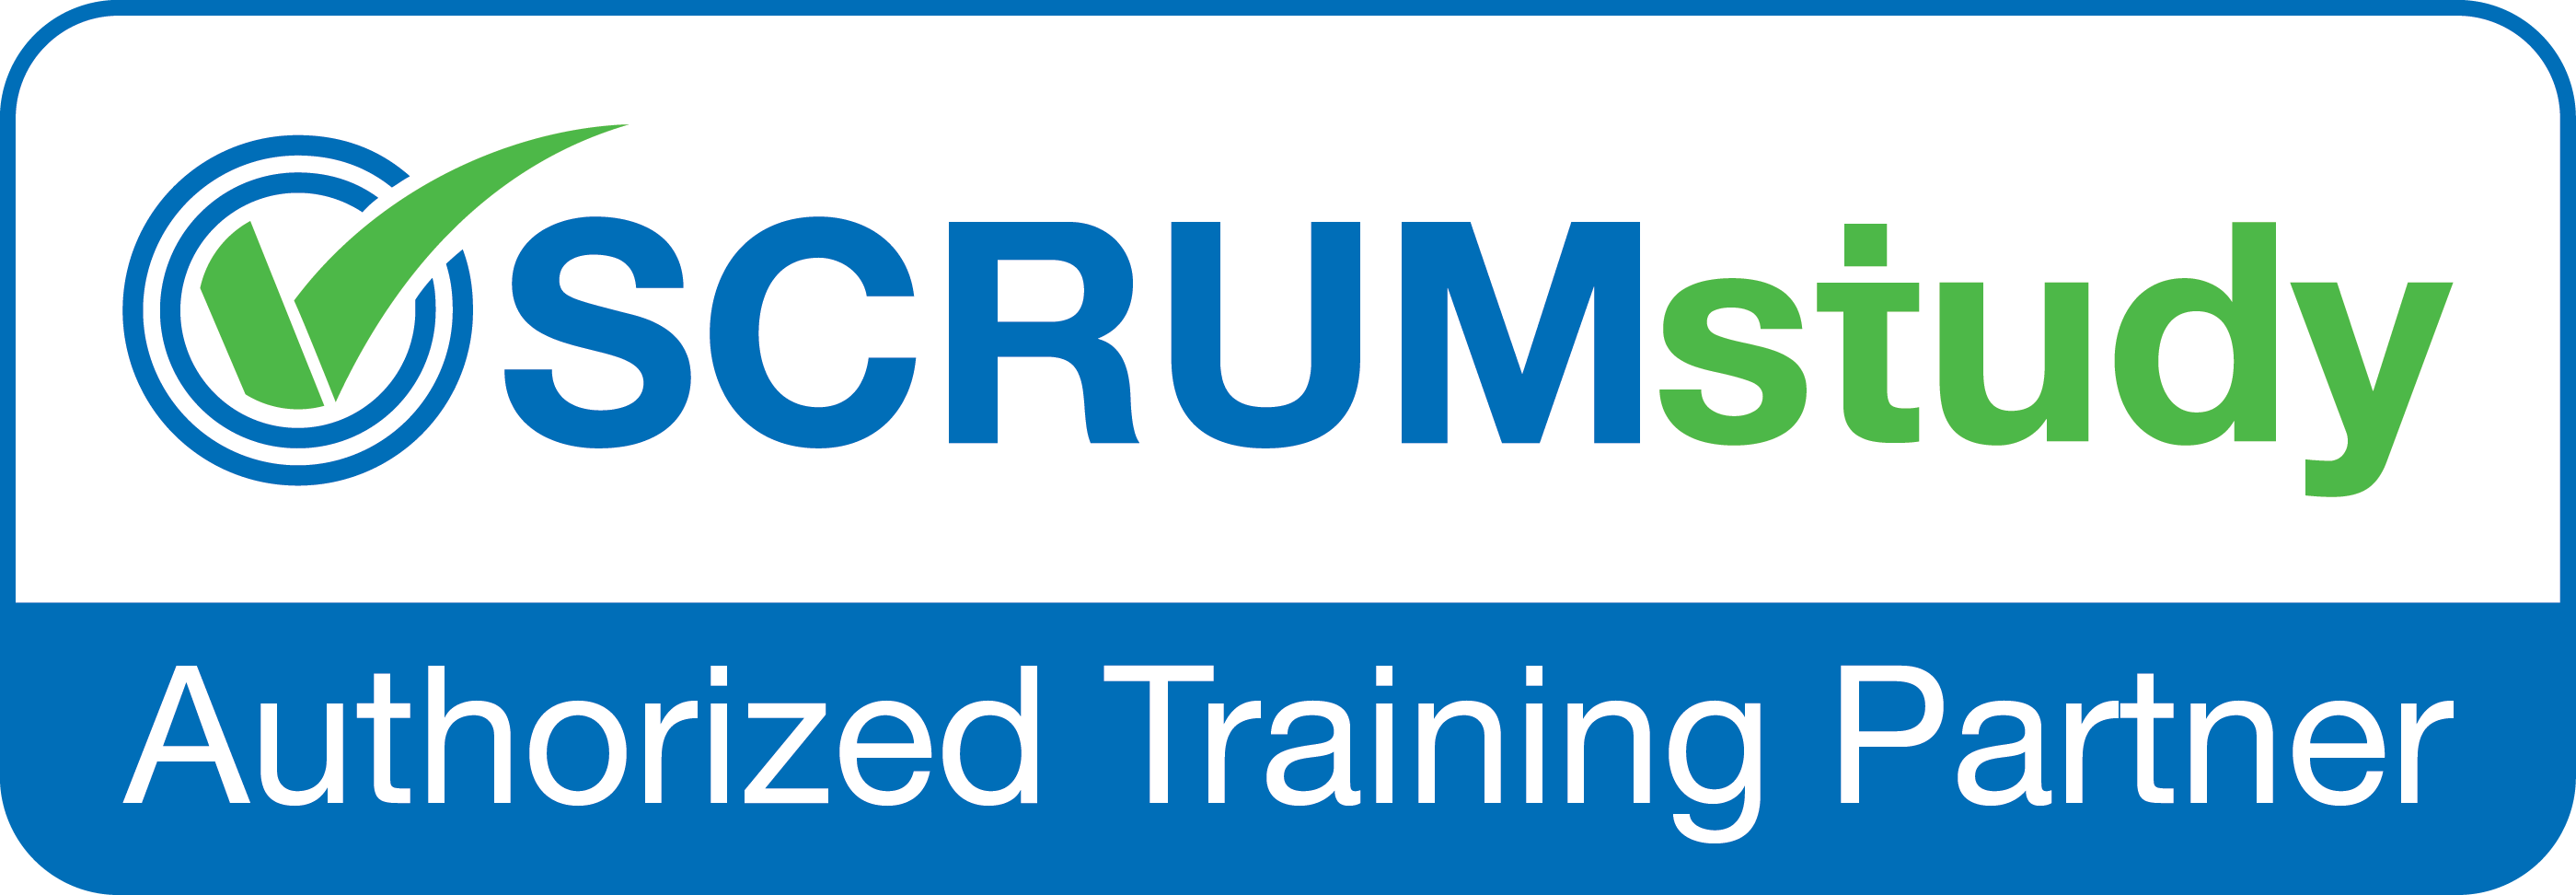 Scrum Master Certification Course 2 Days Scrumstudy Certified